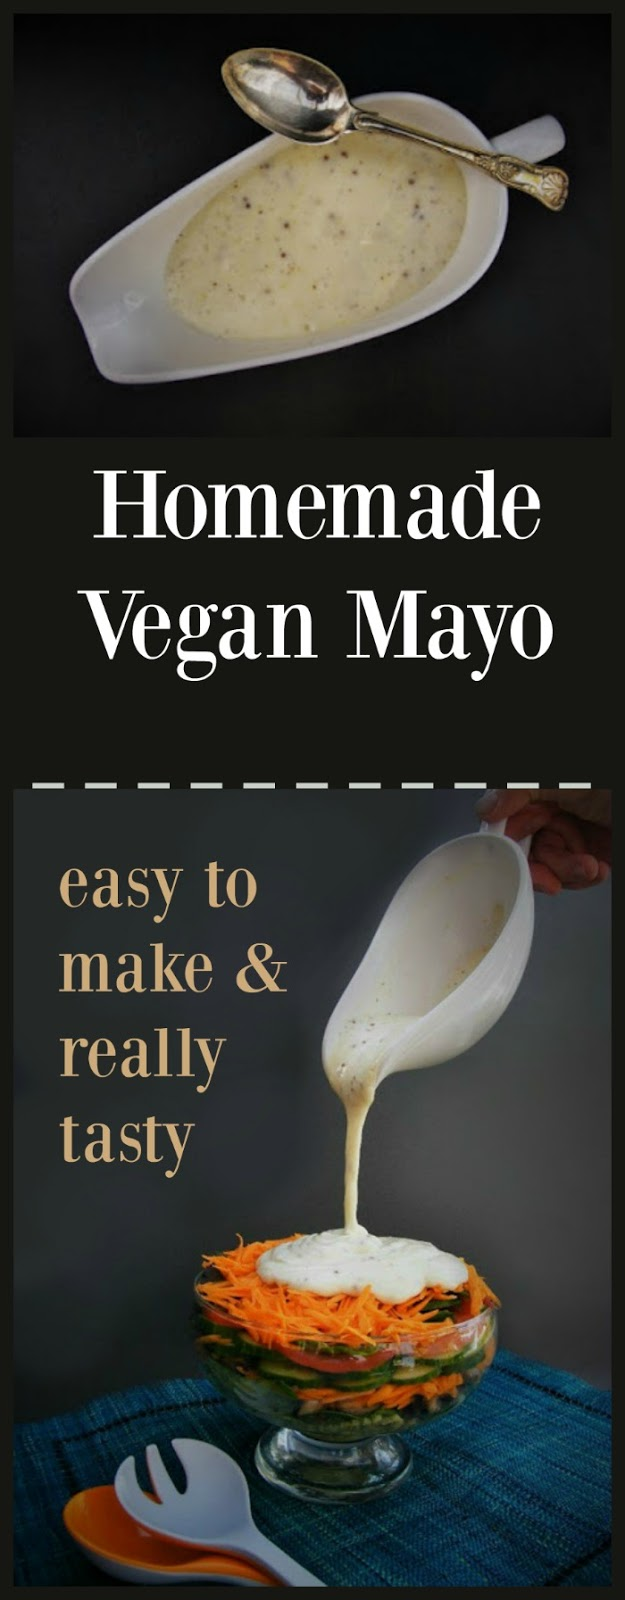 Homemade vegan mayonnaise. It's a simple dressing to make. You start with unsweetened soya milk, wholegrain mustard, some lemon juice and black pepper in a blender. Whizz these up, while slowly drizzling in some olive oil. Once you have tried this, you will be loath to buy mayonnaise again.